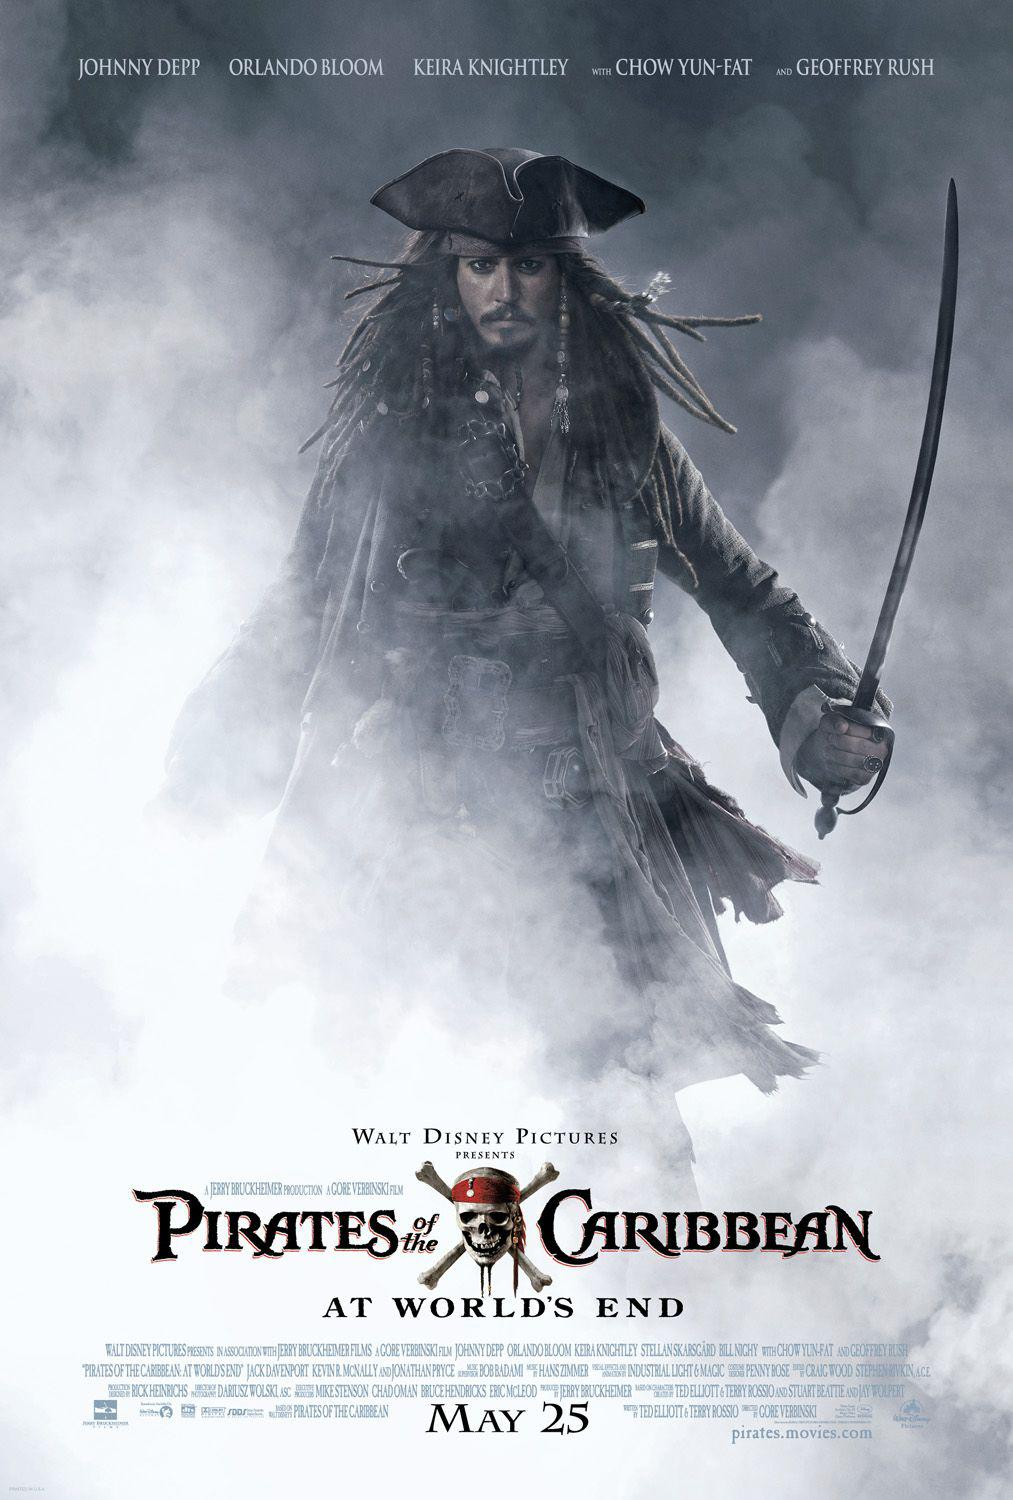 Film - Pirati dei Caraibi 3 aii Confini del Mondo - Pirates of the Caribbean at Worlds End - poster  - Johnny Depp